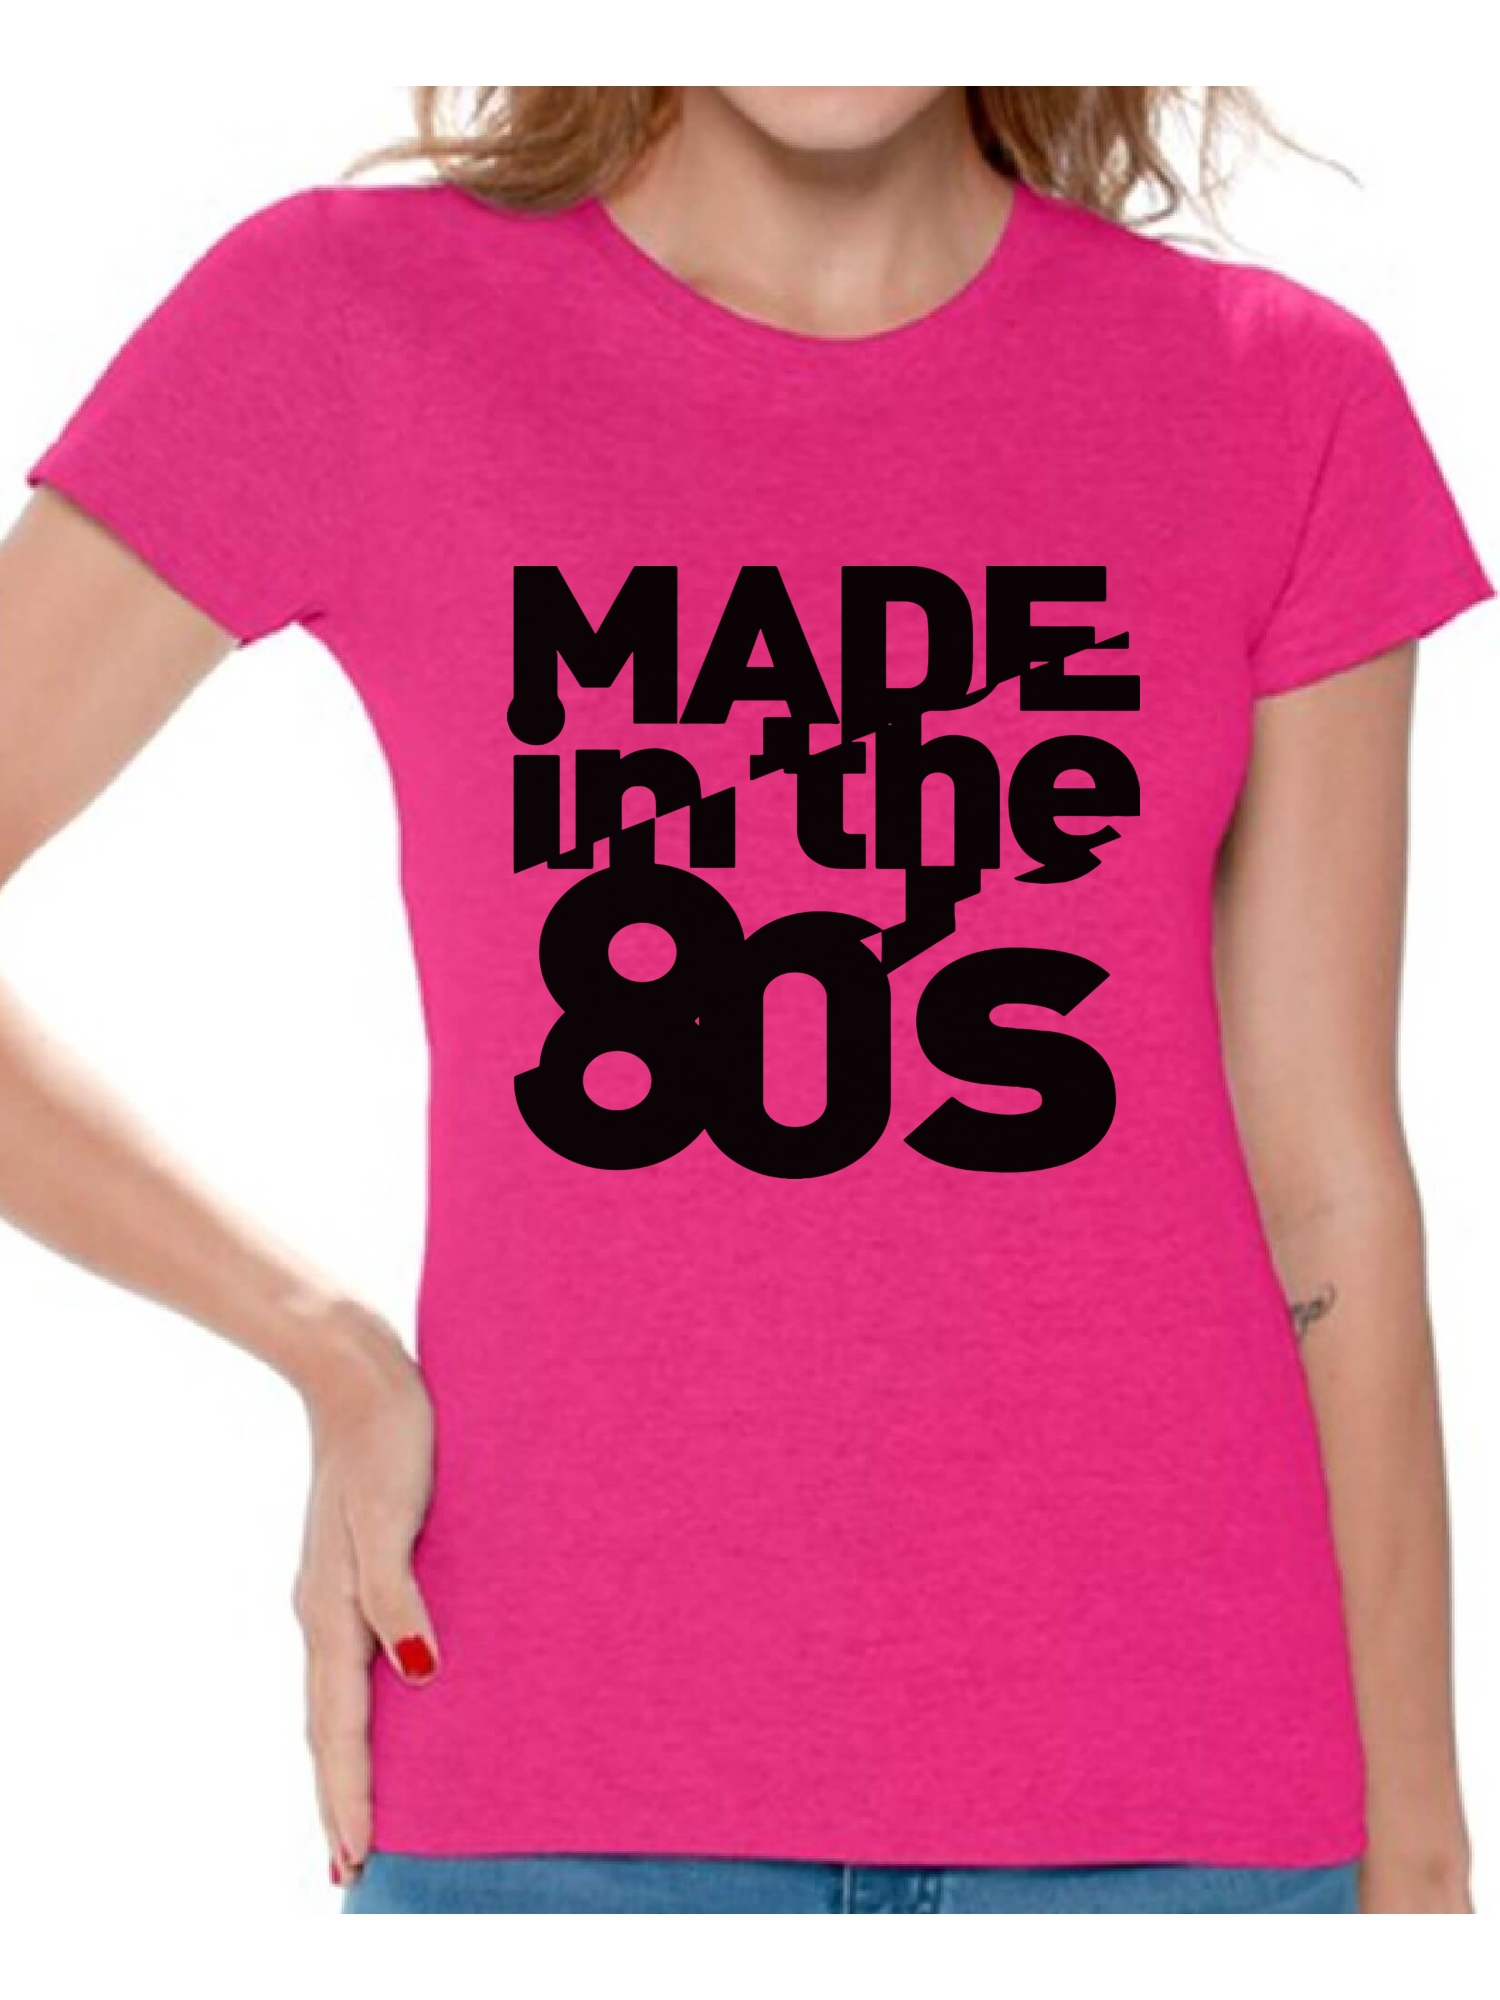 70280757 Awkward Styles Made in 80s Shirt 80s T Shirt 80s Birthday Shirt Womens 80s  Accessories Retro Vintage Rock Concert T-Shirt 80s Costume 80s Clothes for  Women ...